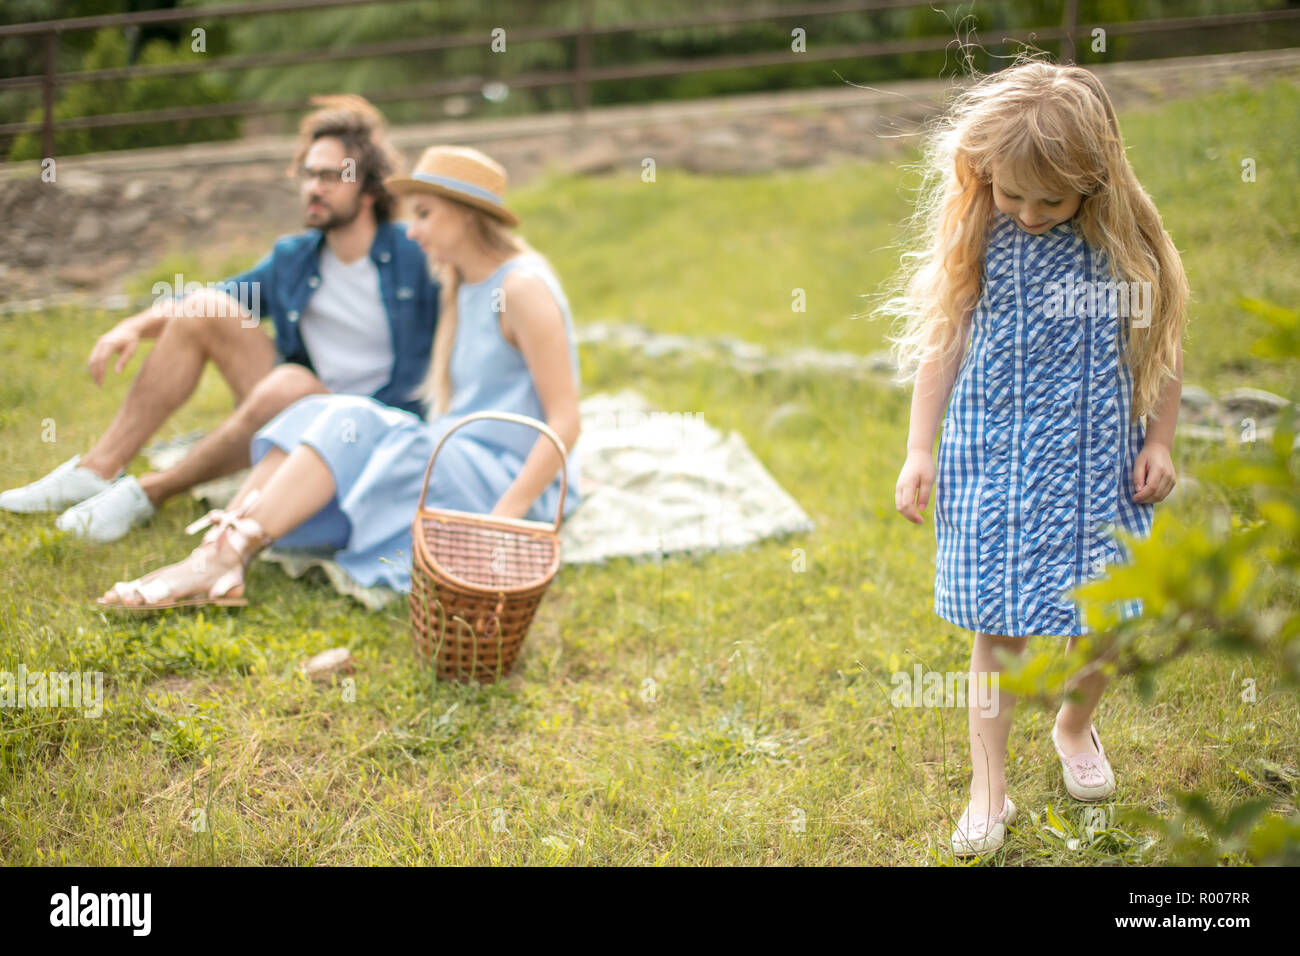 happy Family picnicking outdoors with their cute daughter, blue clothes, woman in hat - Stock Image